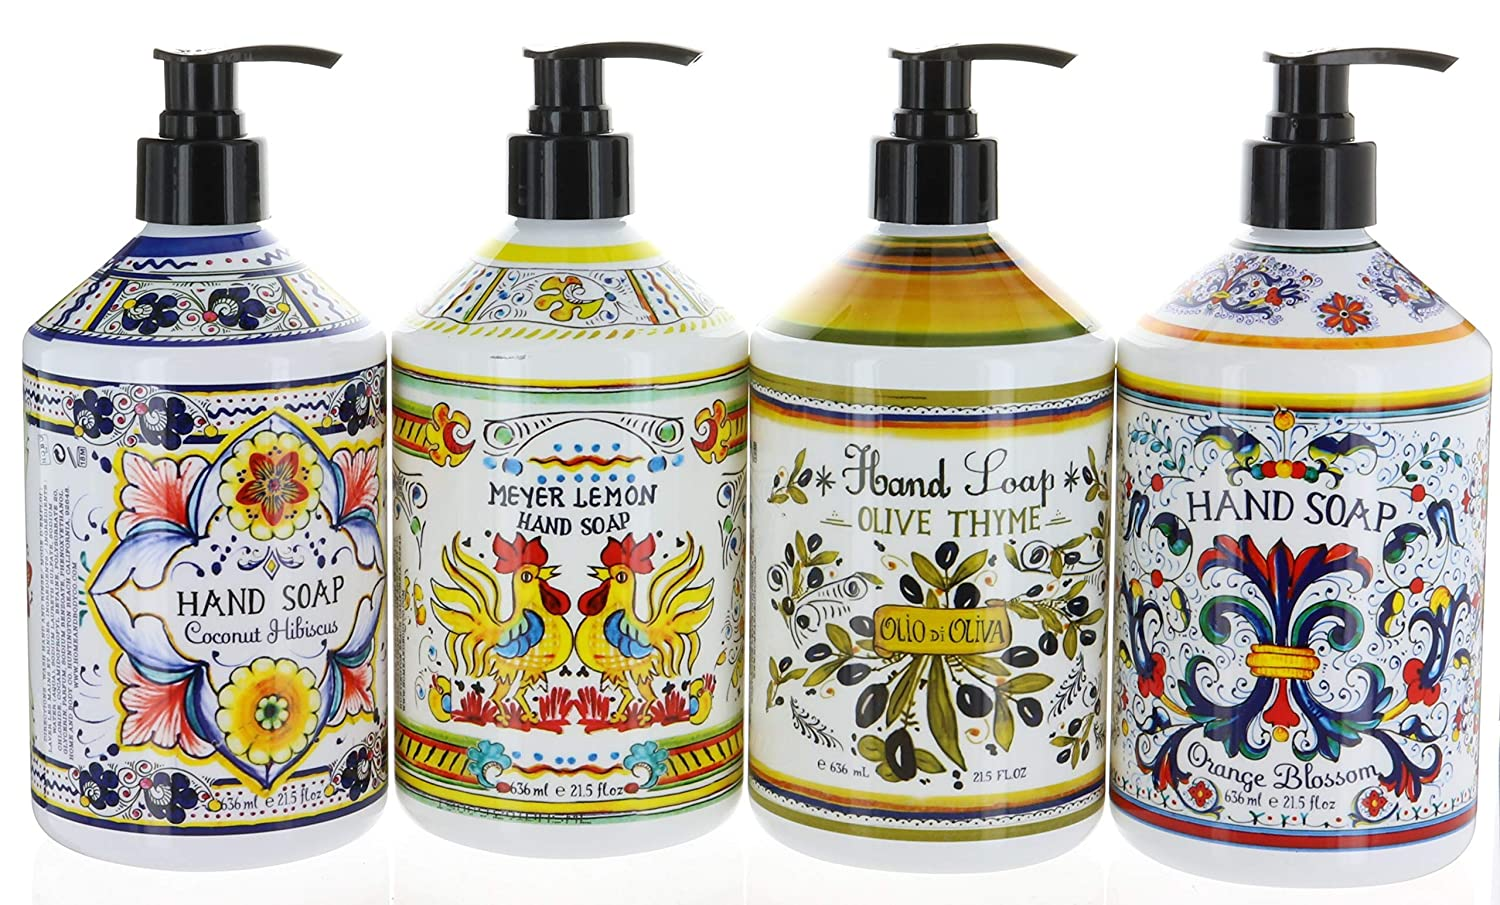 Home & Body Company Italian Deruta Hand Soap Collection, 4-Pack